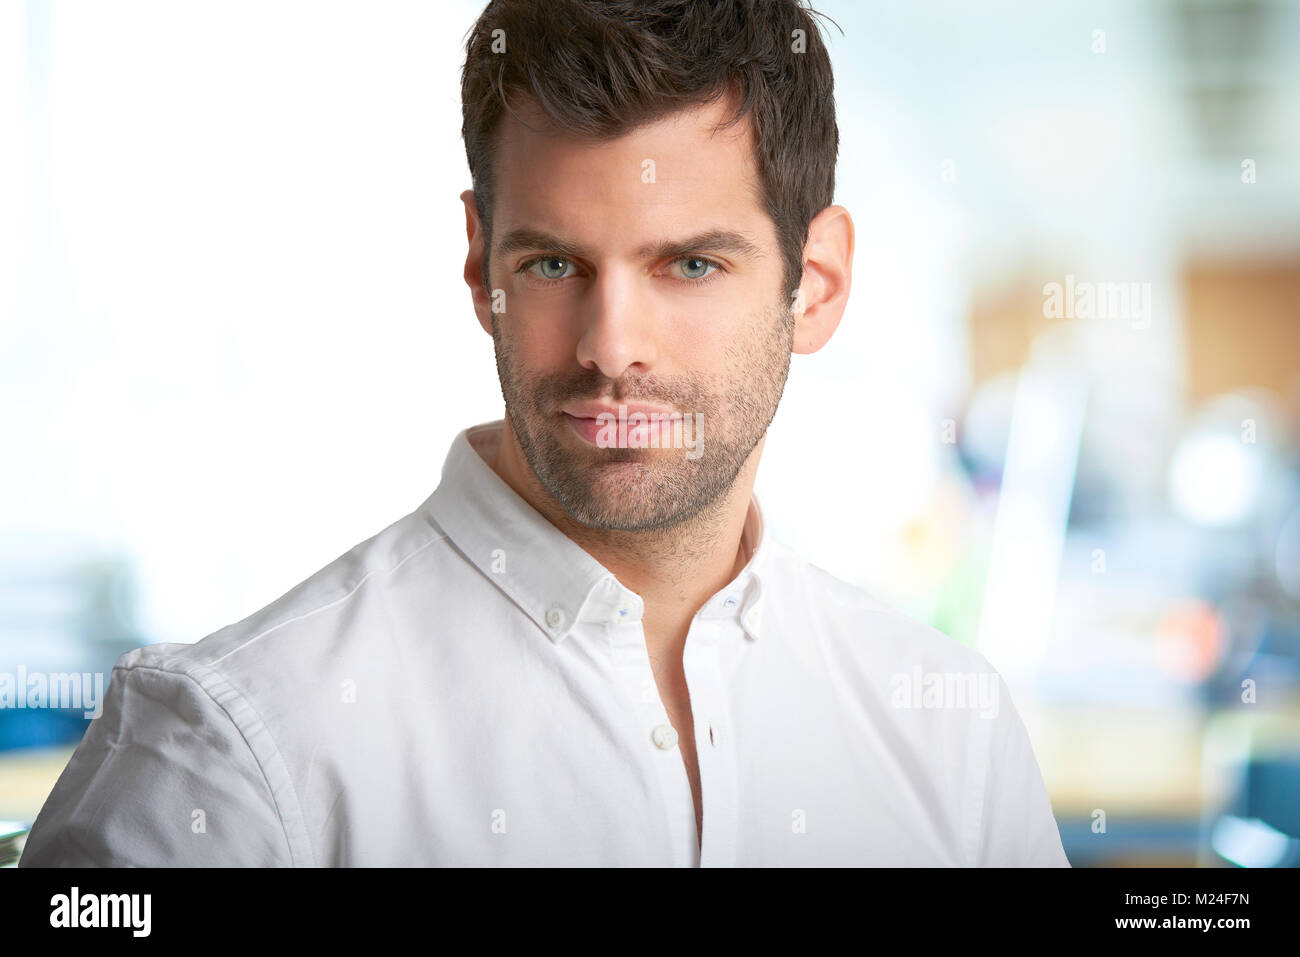 Close-up portrait of young financial assistant businessman looking at camera while standing at the office. - Stock Image